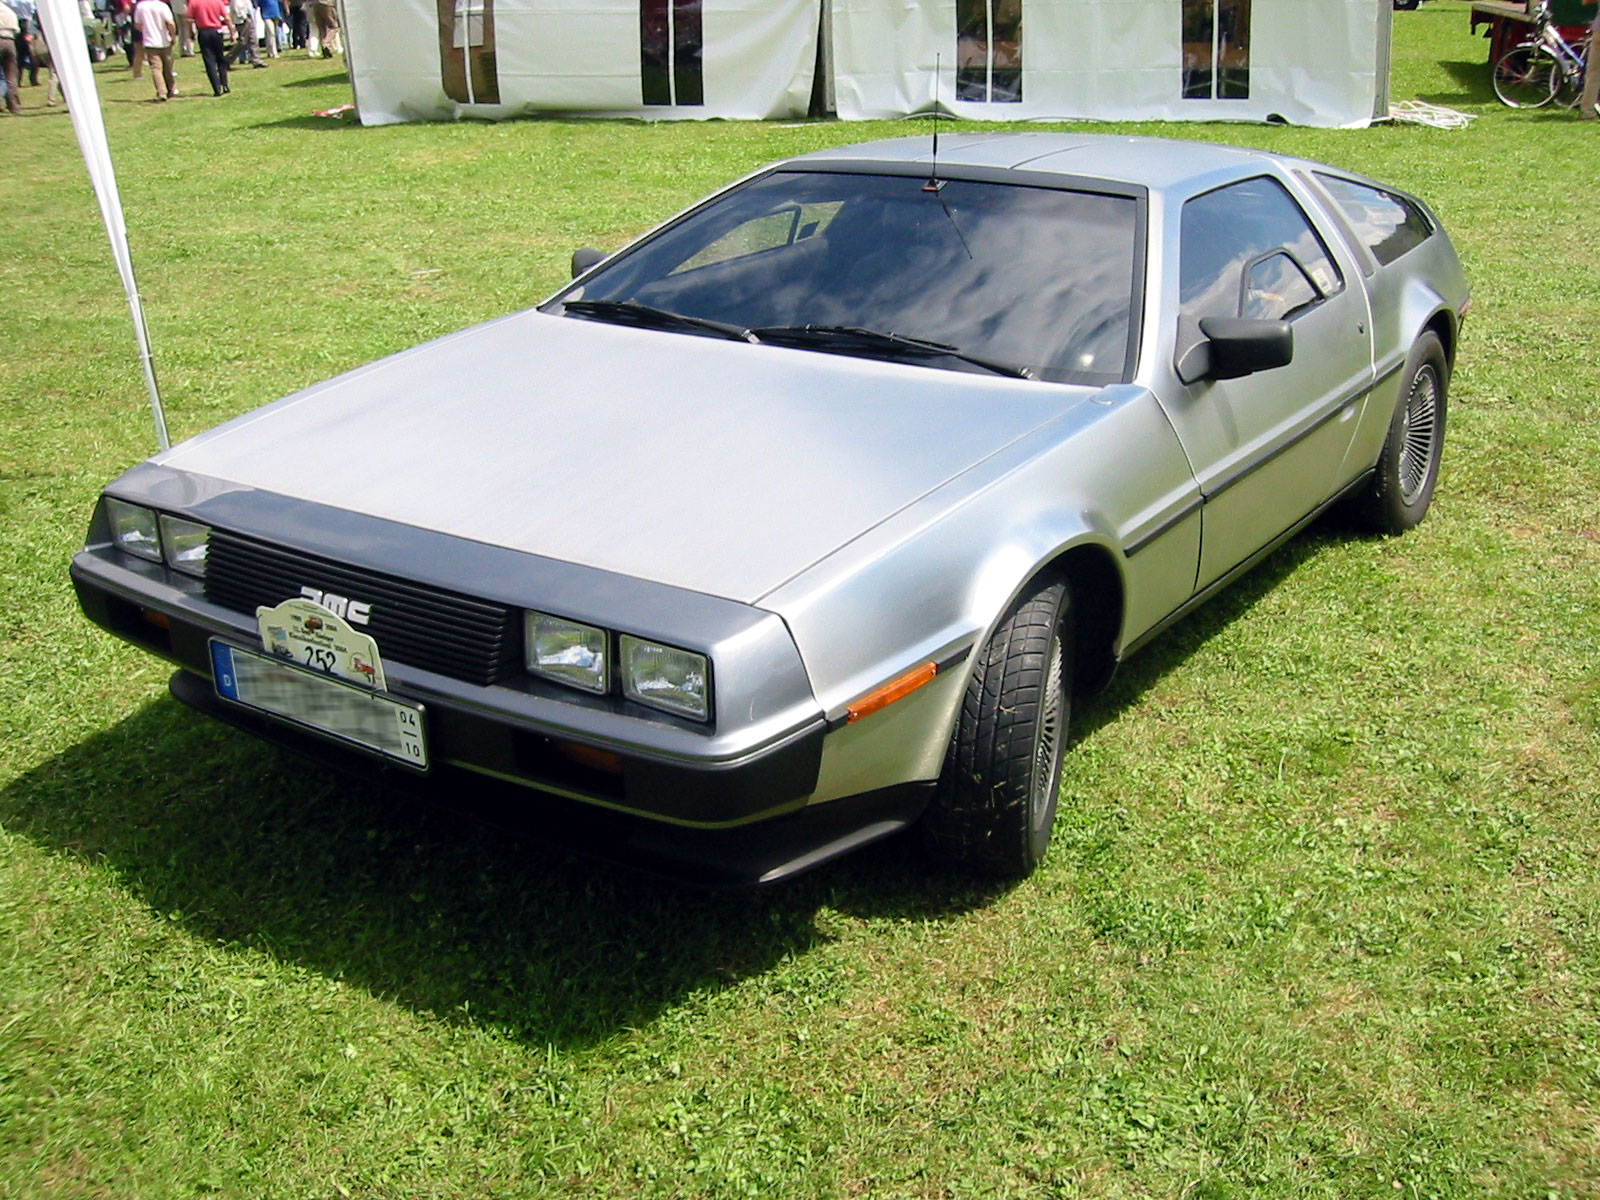 Delorean_dmc12_front.jpg